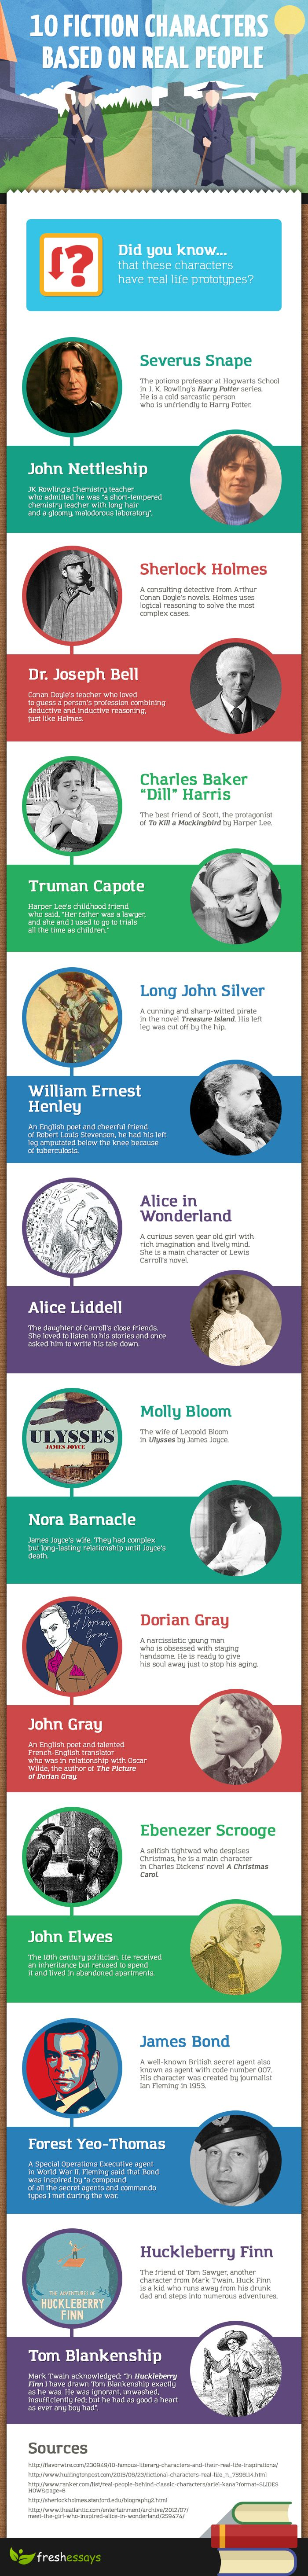 10 Fiction Characters Based on Real People #infographic